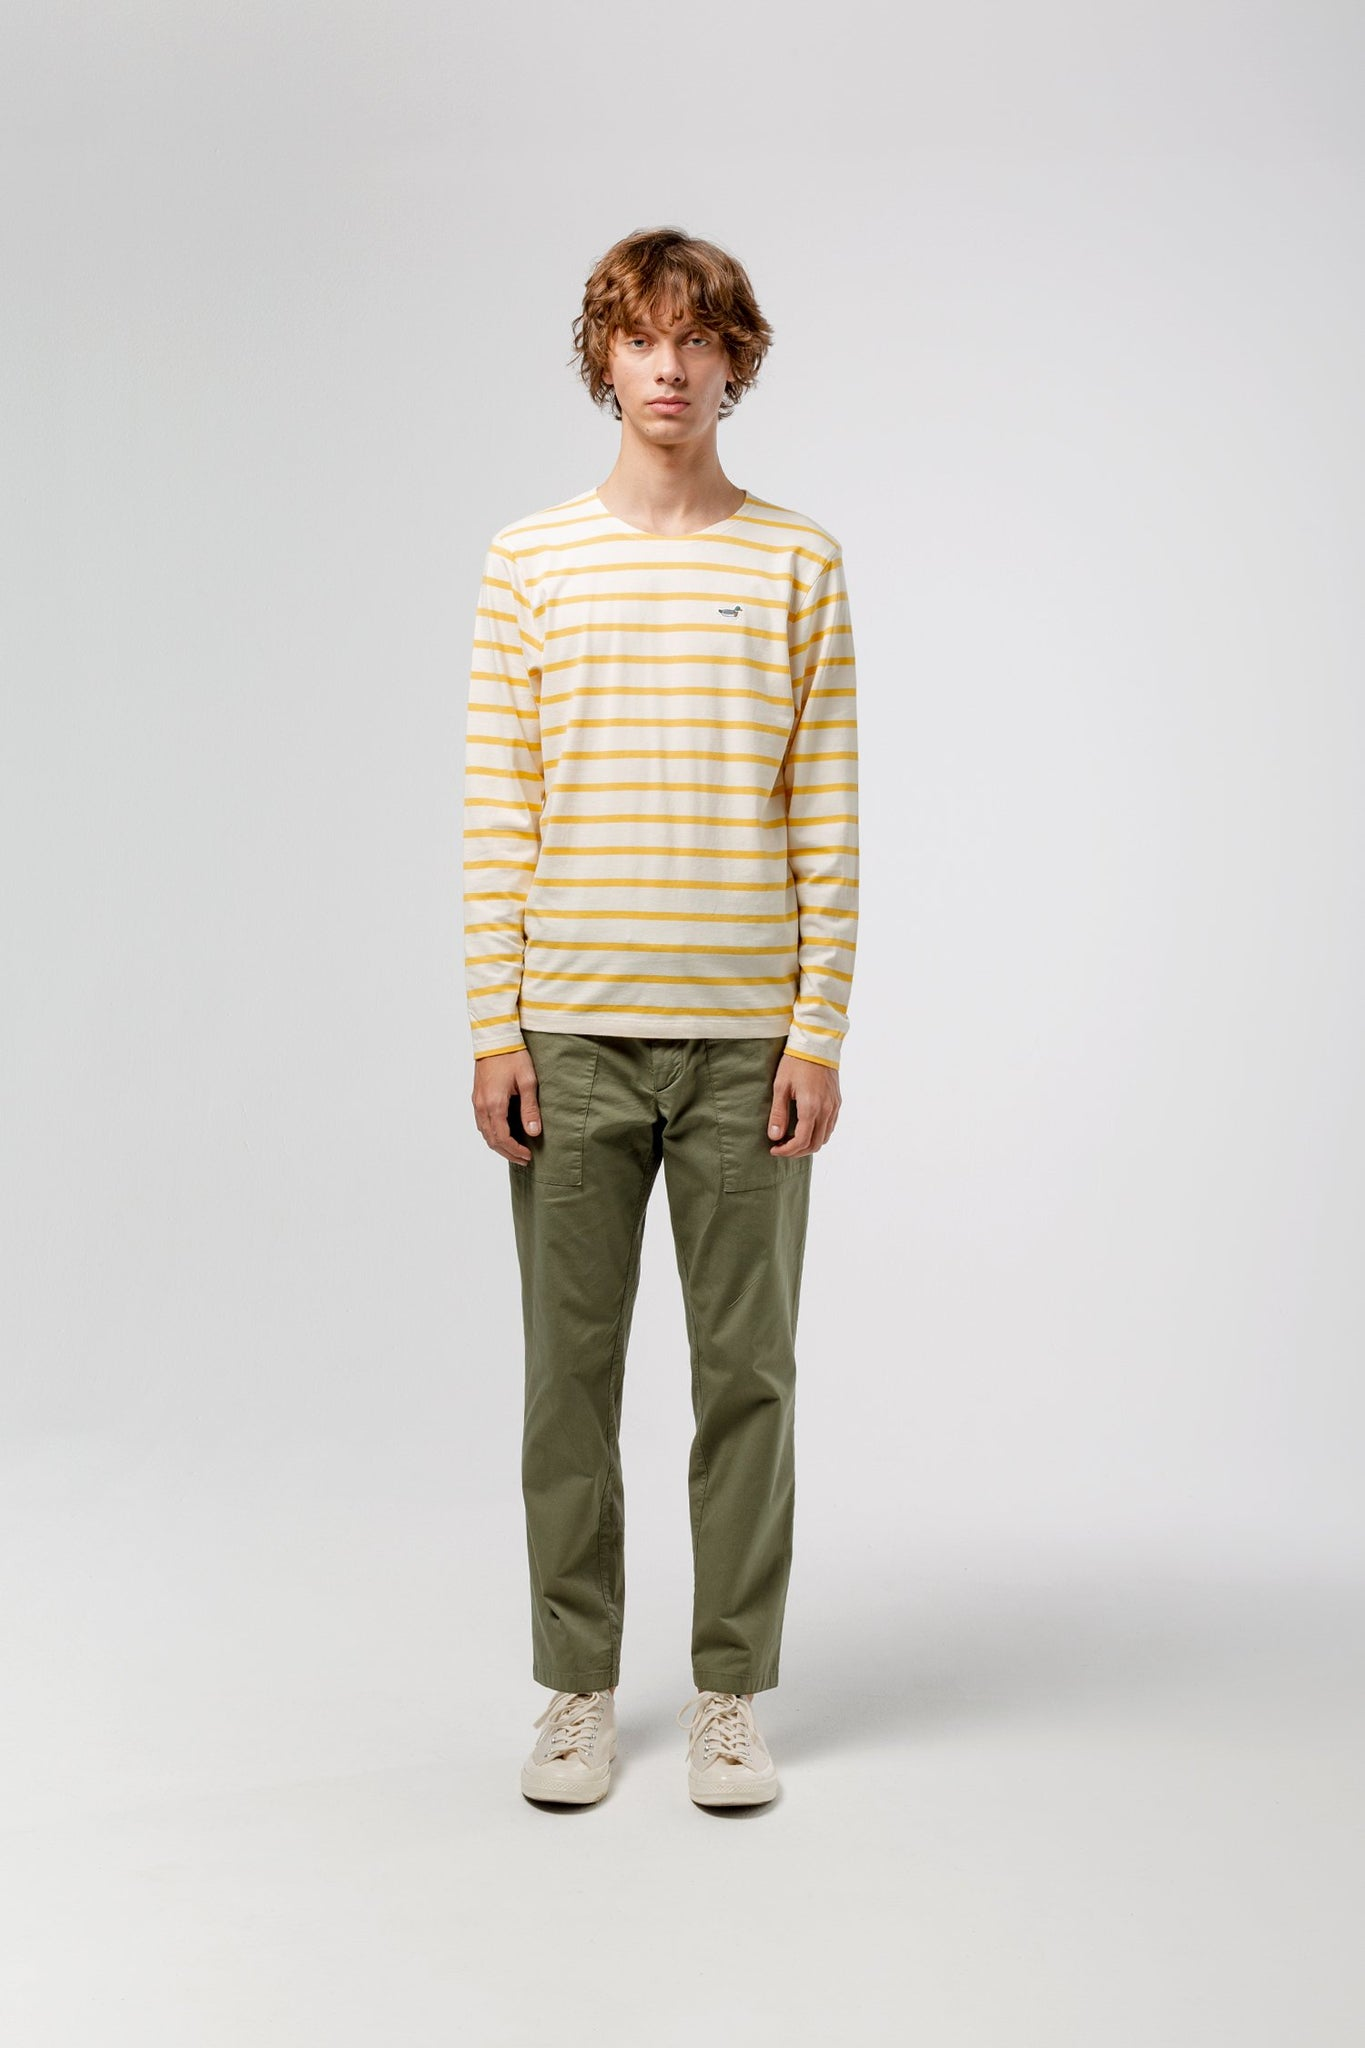 HORIZONTAL STRIPES YELLOW